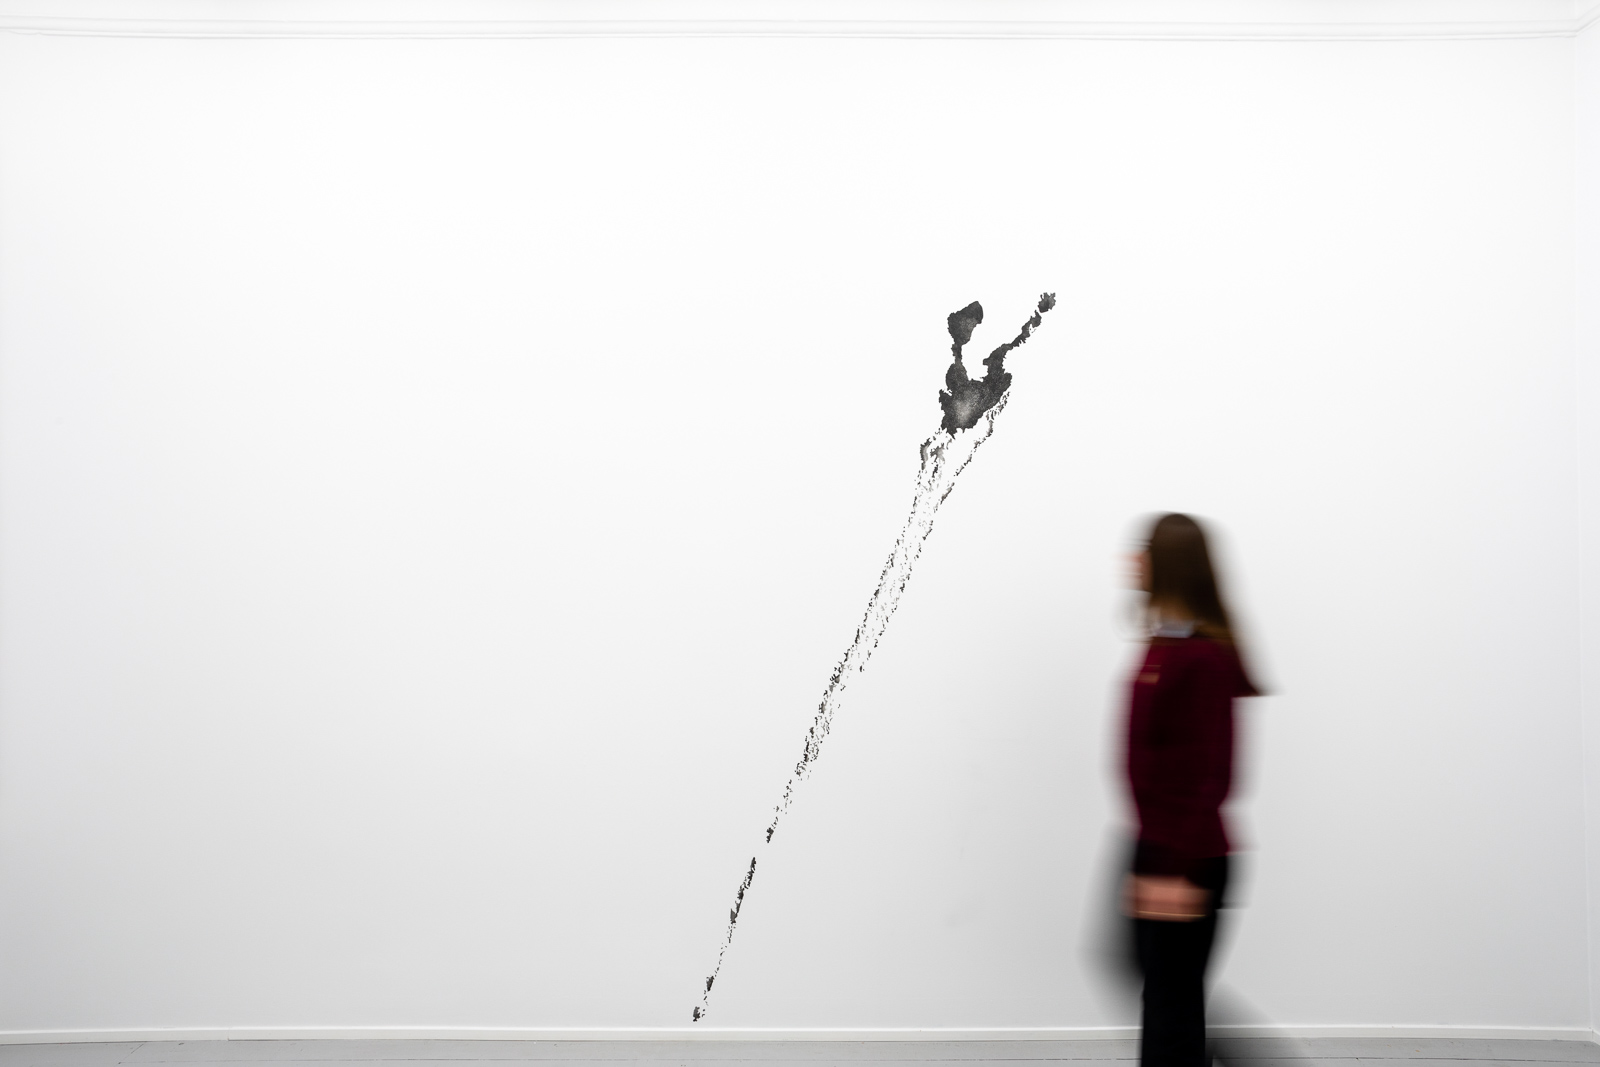 Wall Drawing for Galleri Riis IV, 2019. Crayon on wall, W 517 x H 334 cm. Unique